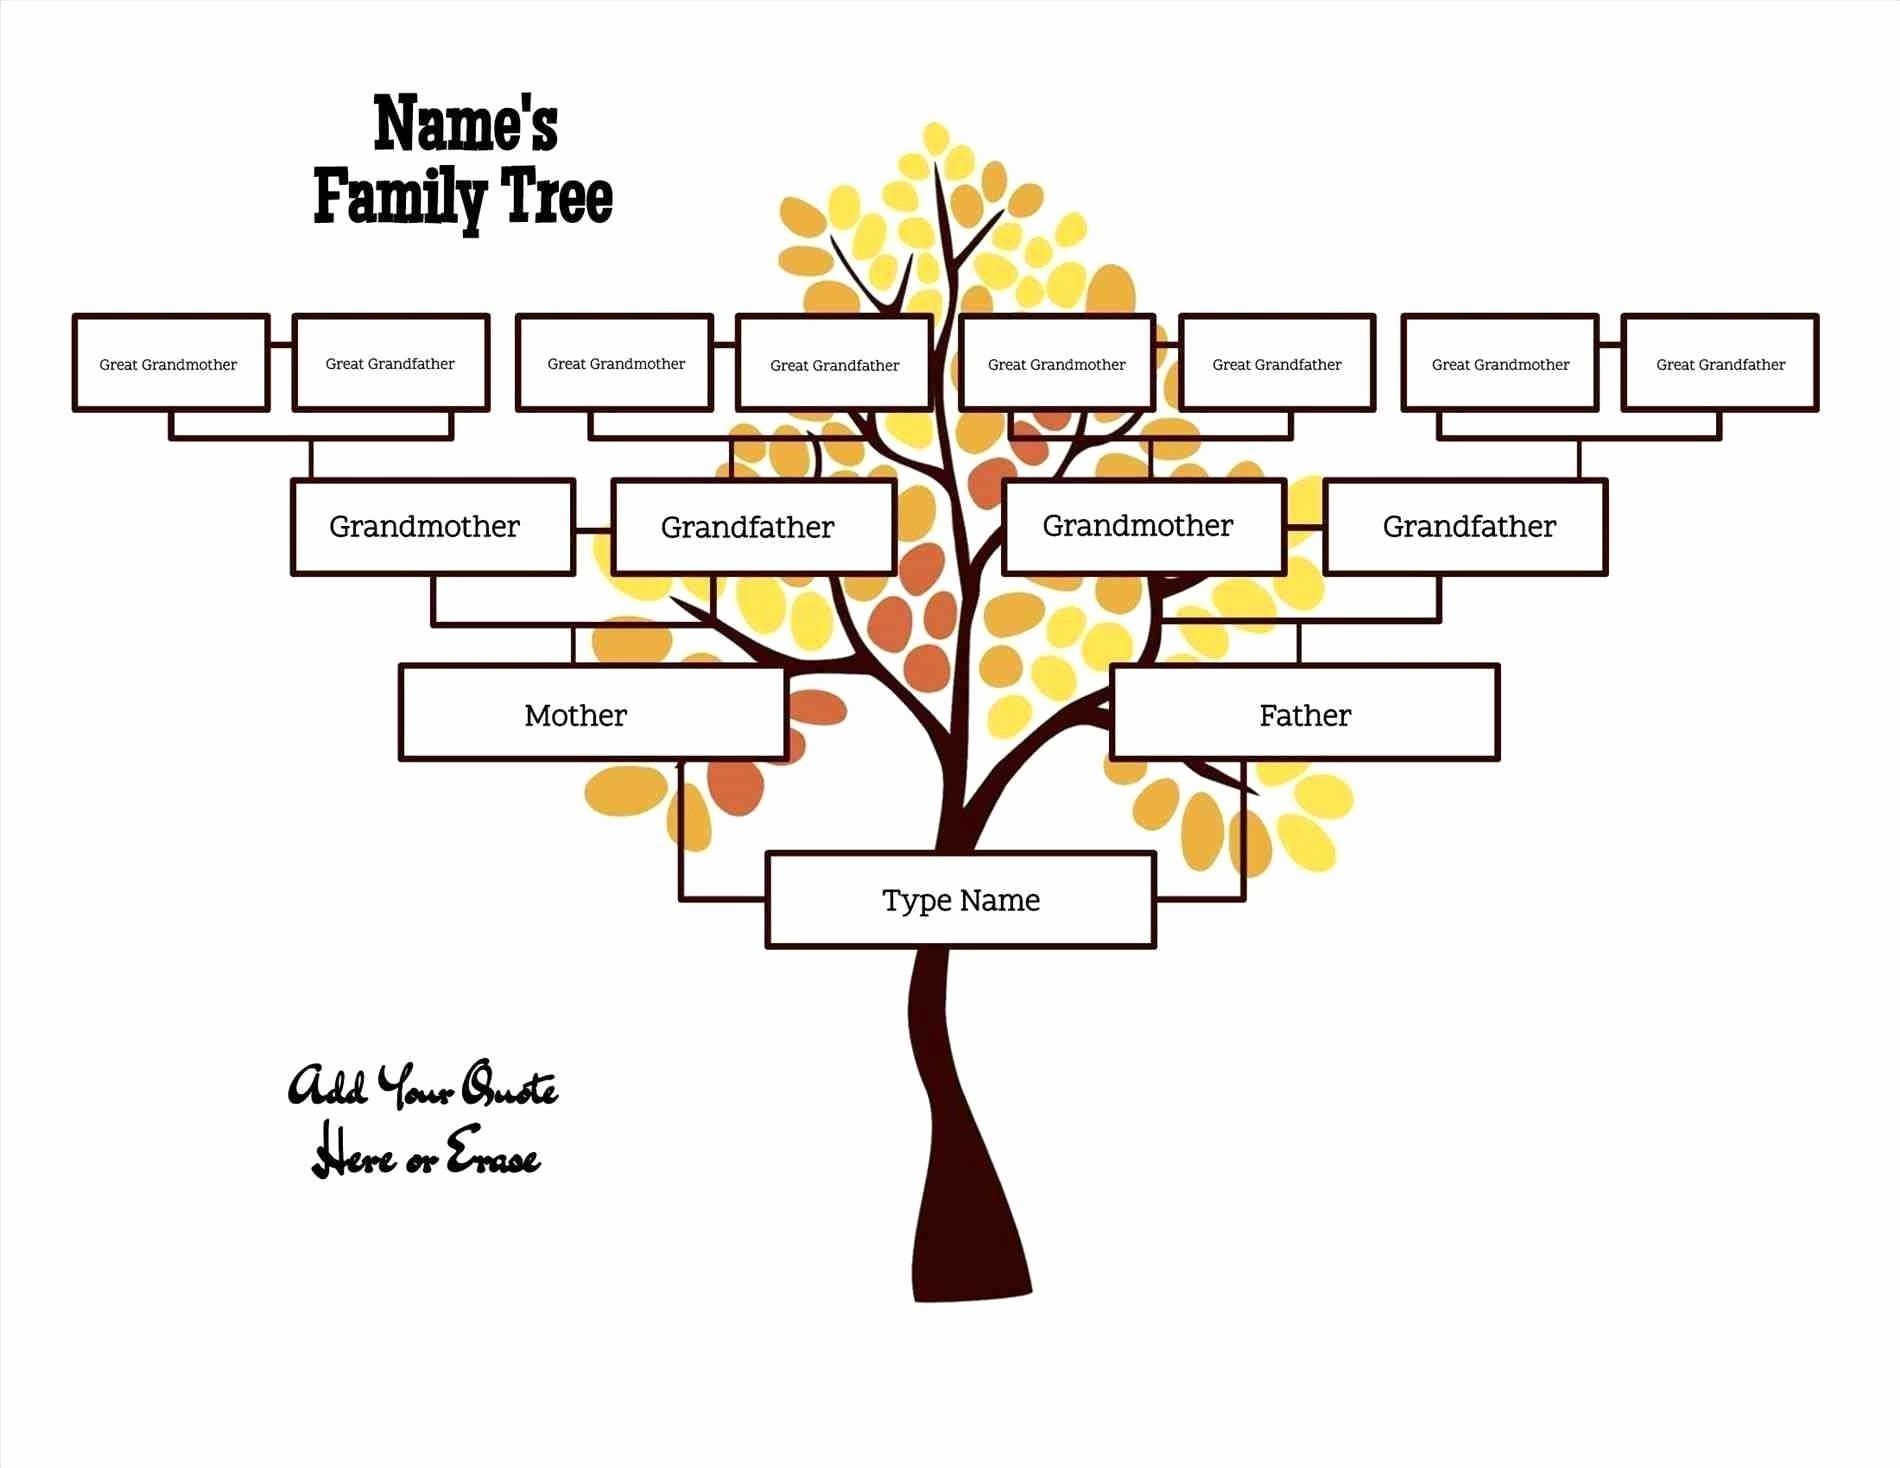 000 Best Free Editable Family Tree Template Concept  With Sibling Powerpoint For MacFull